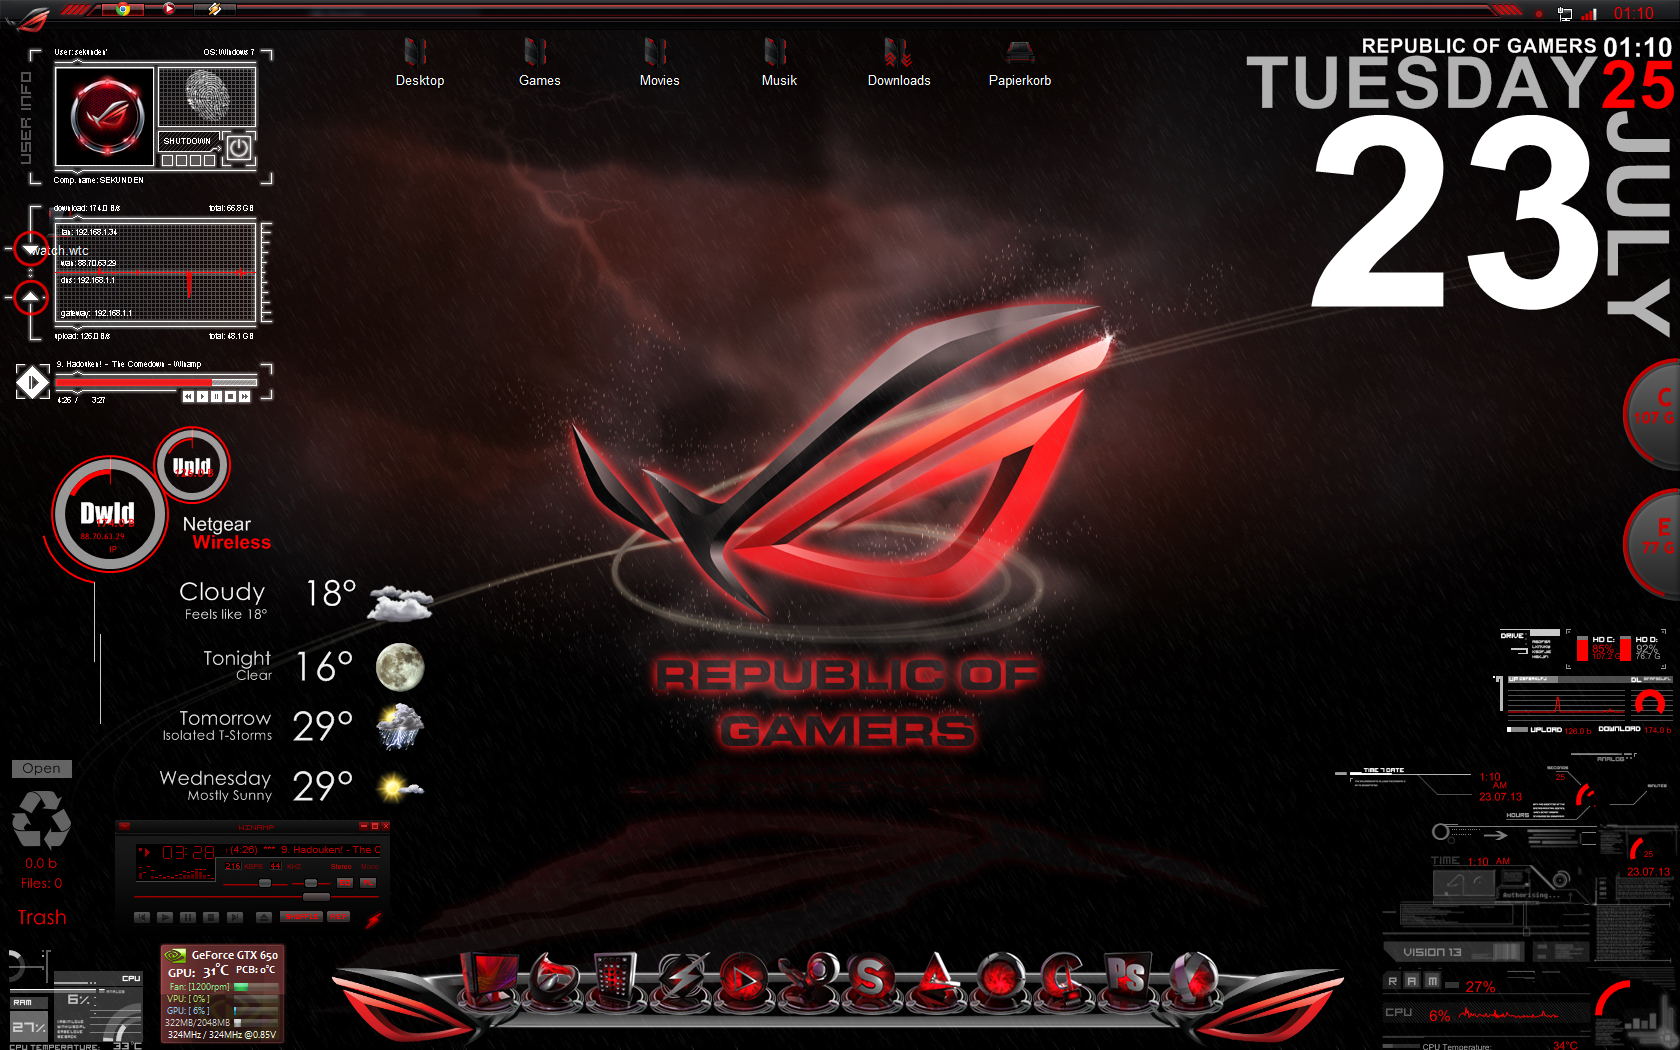 Asus Republic Of Gamers Desktop Screen by sekunden1337 1680x1050